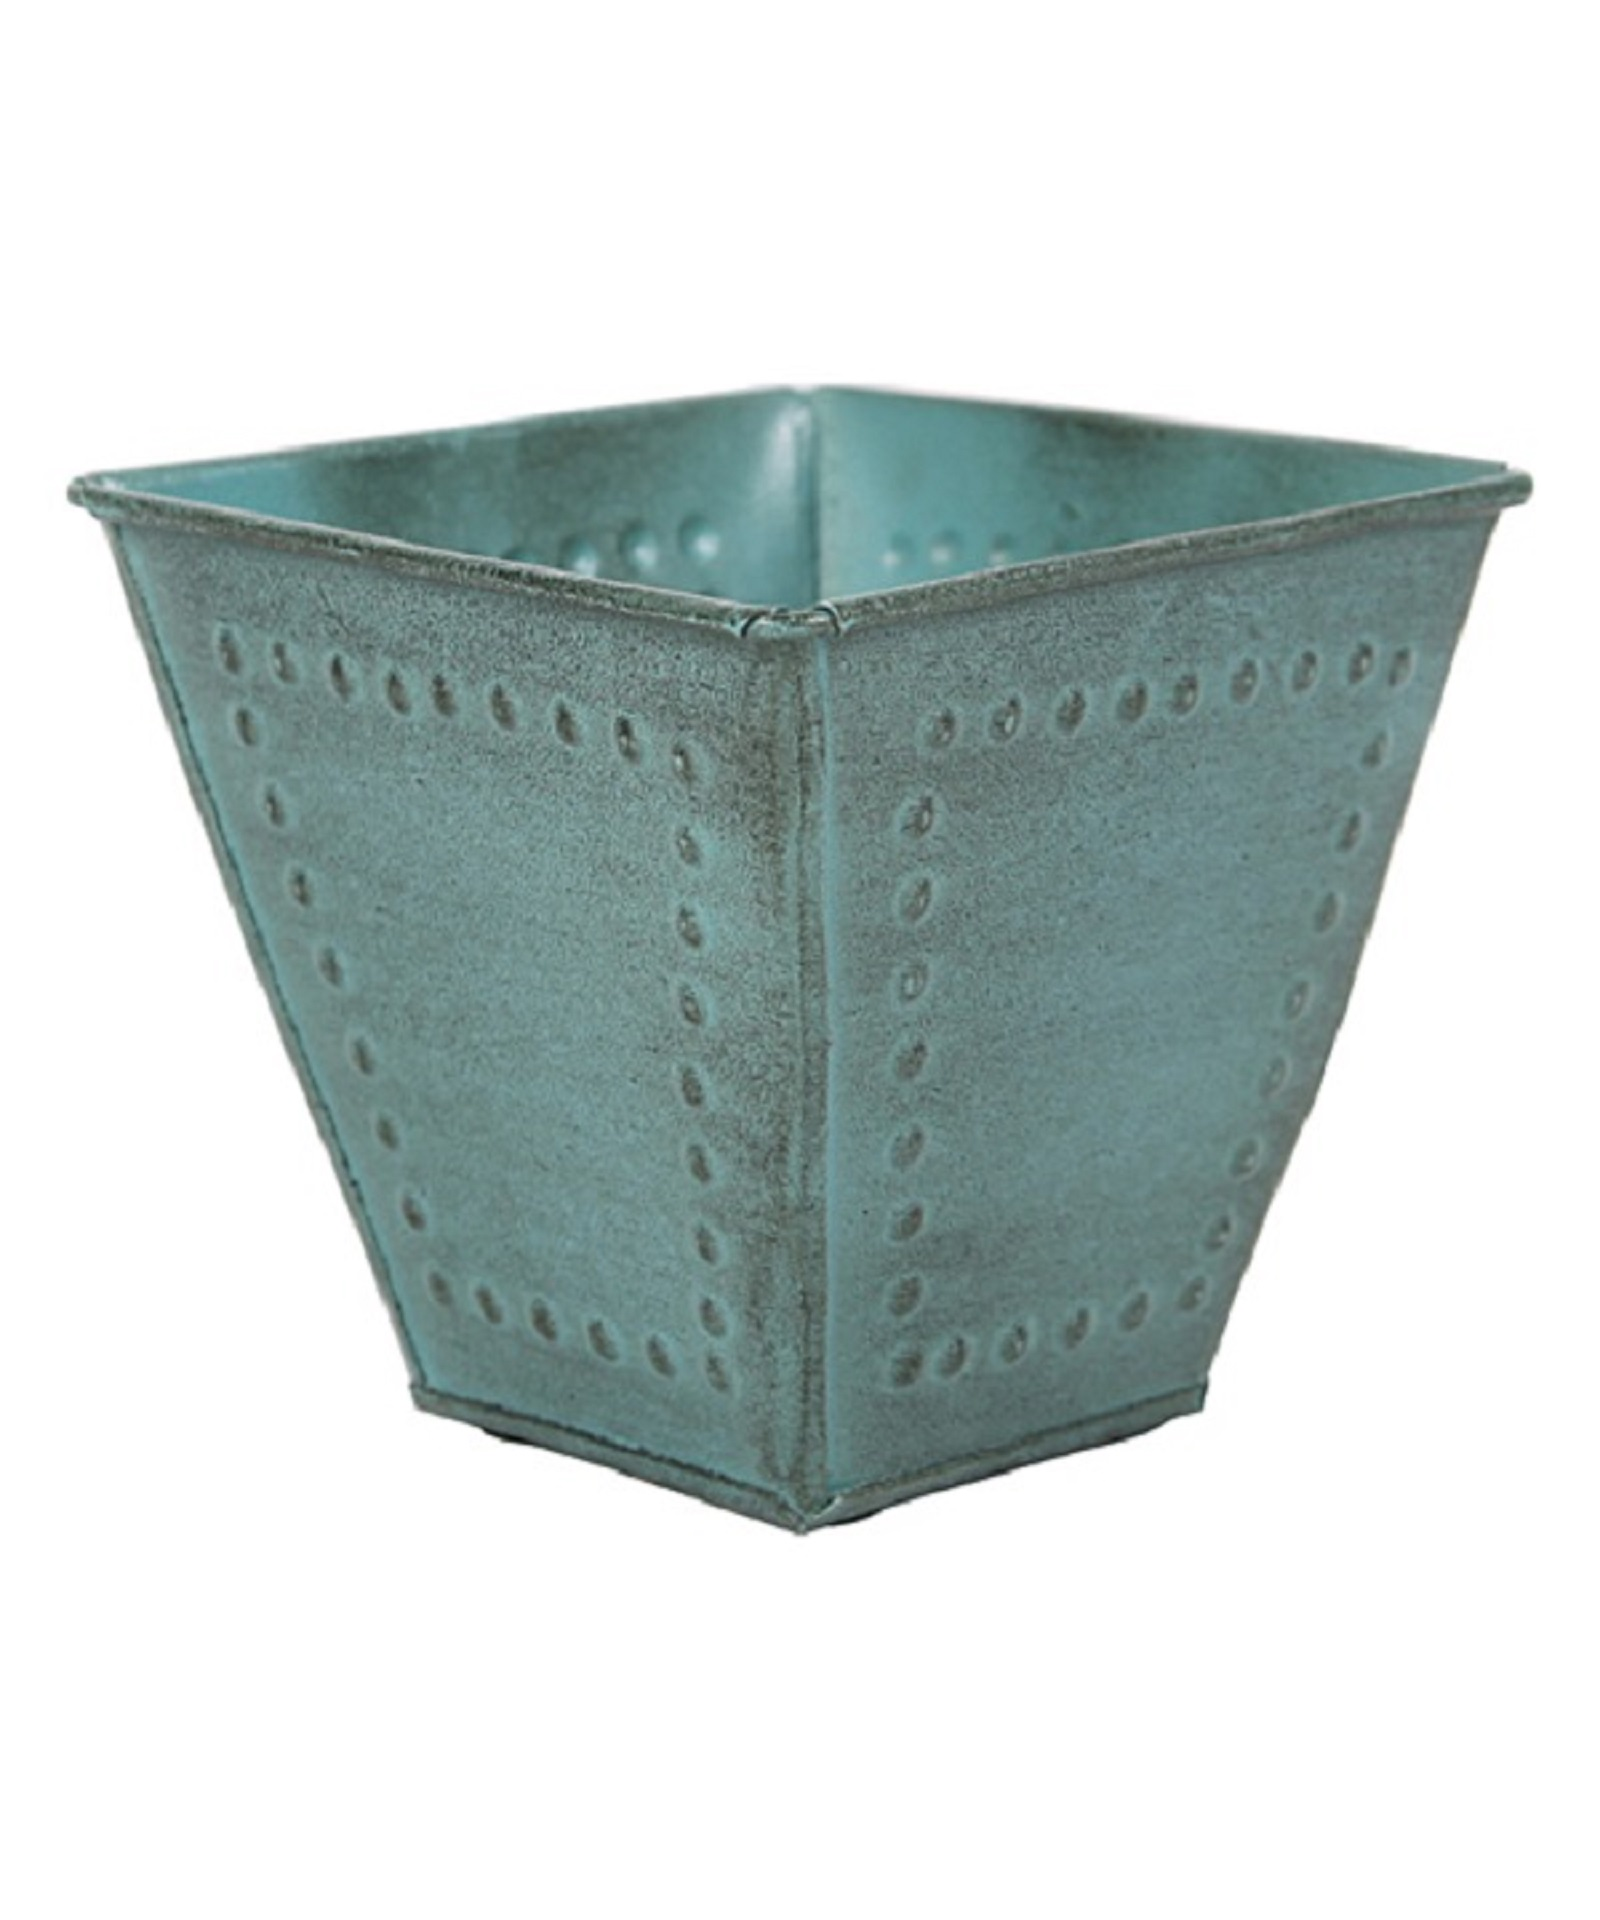 "Robert Allen Home & Garden Metal Square Planter 8"""" Blue"